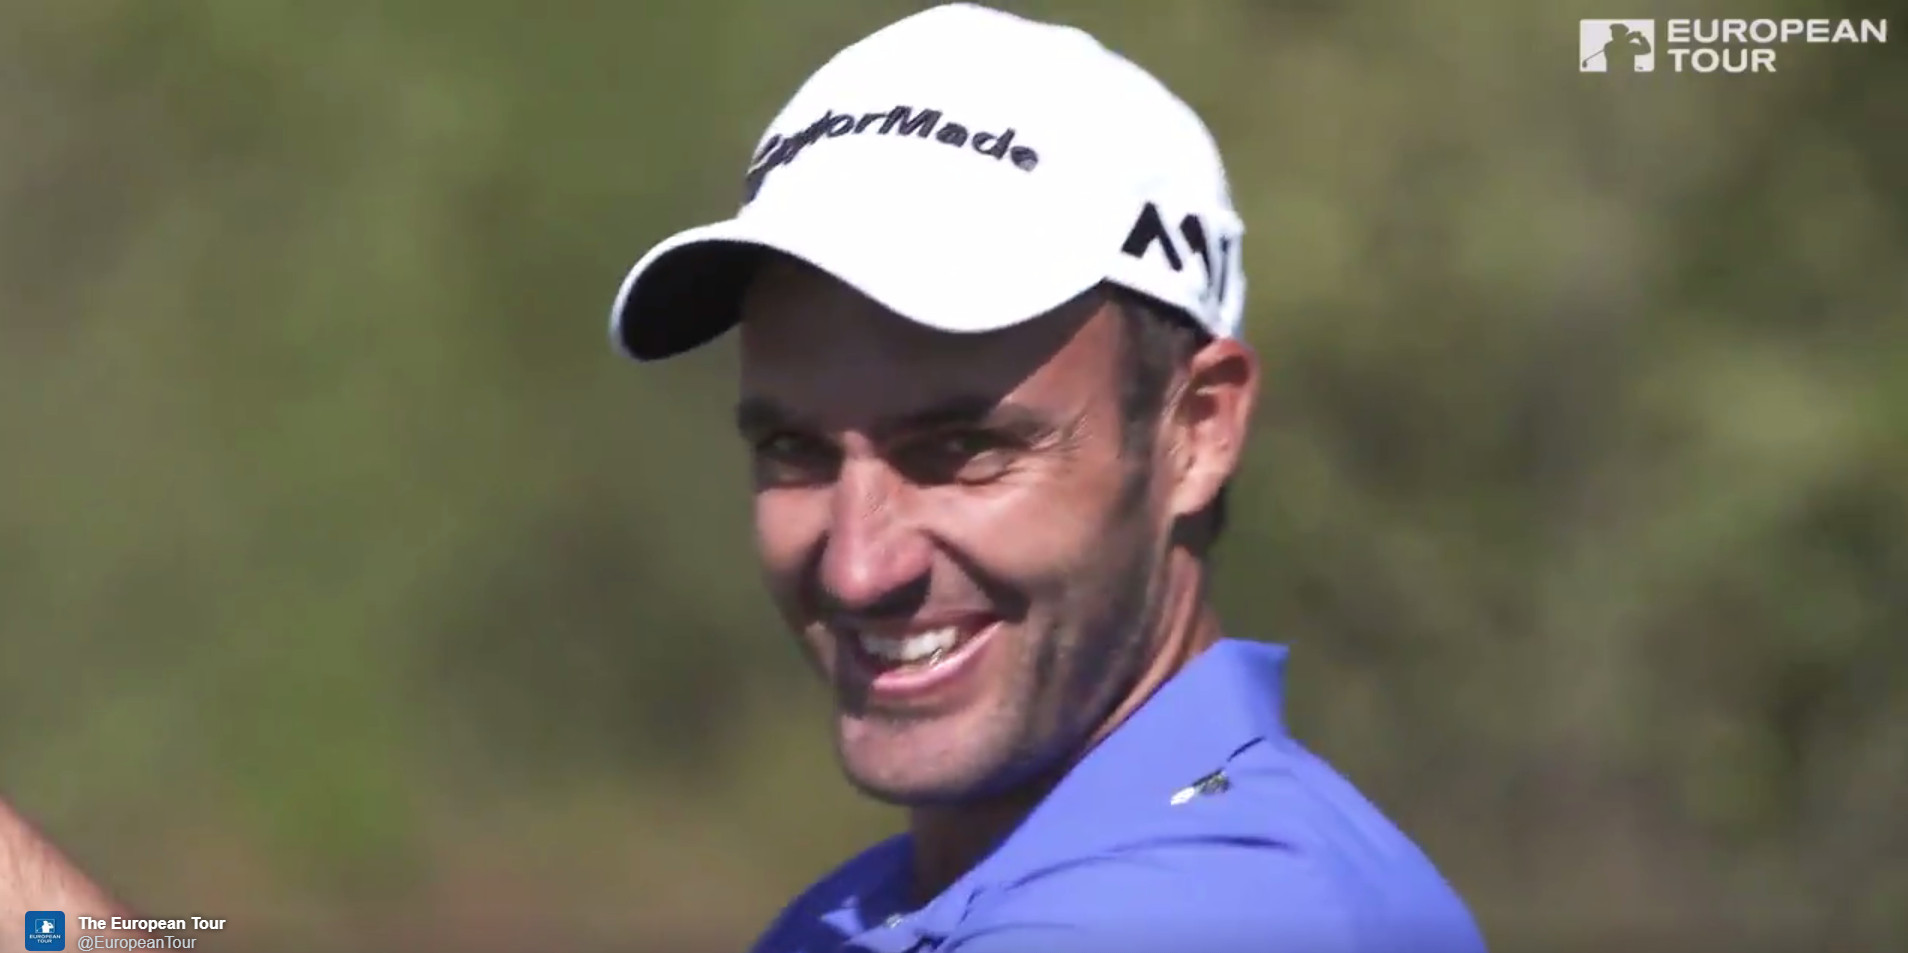 Edoardo Molinari Hole-in-One